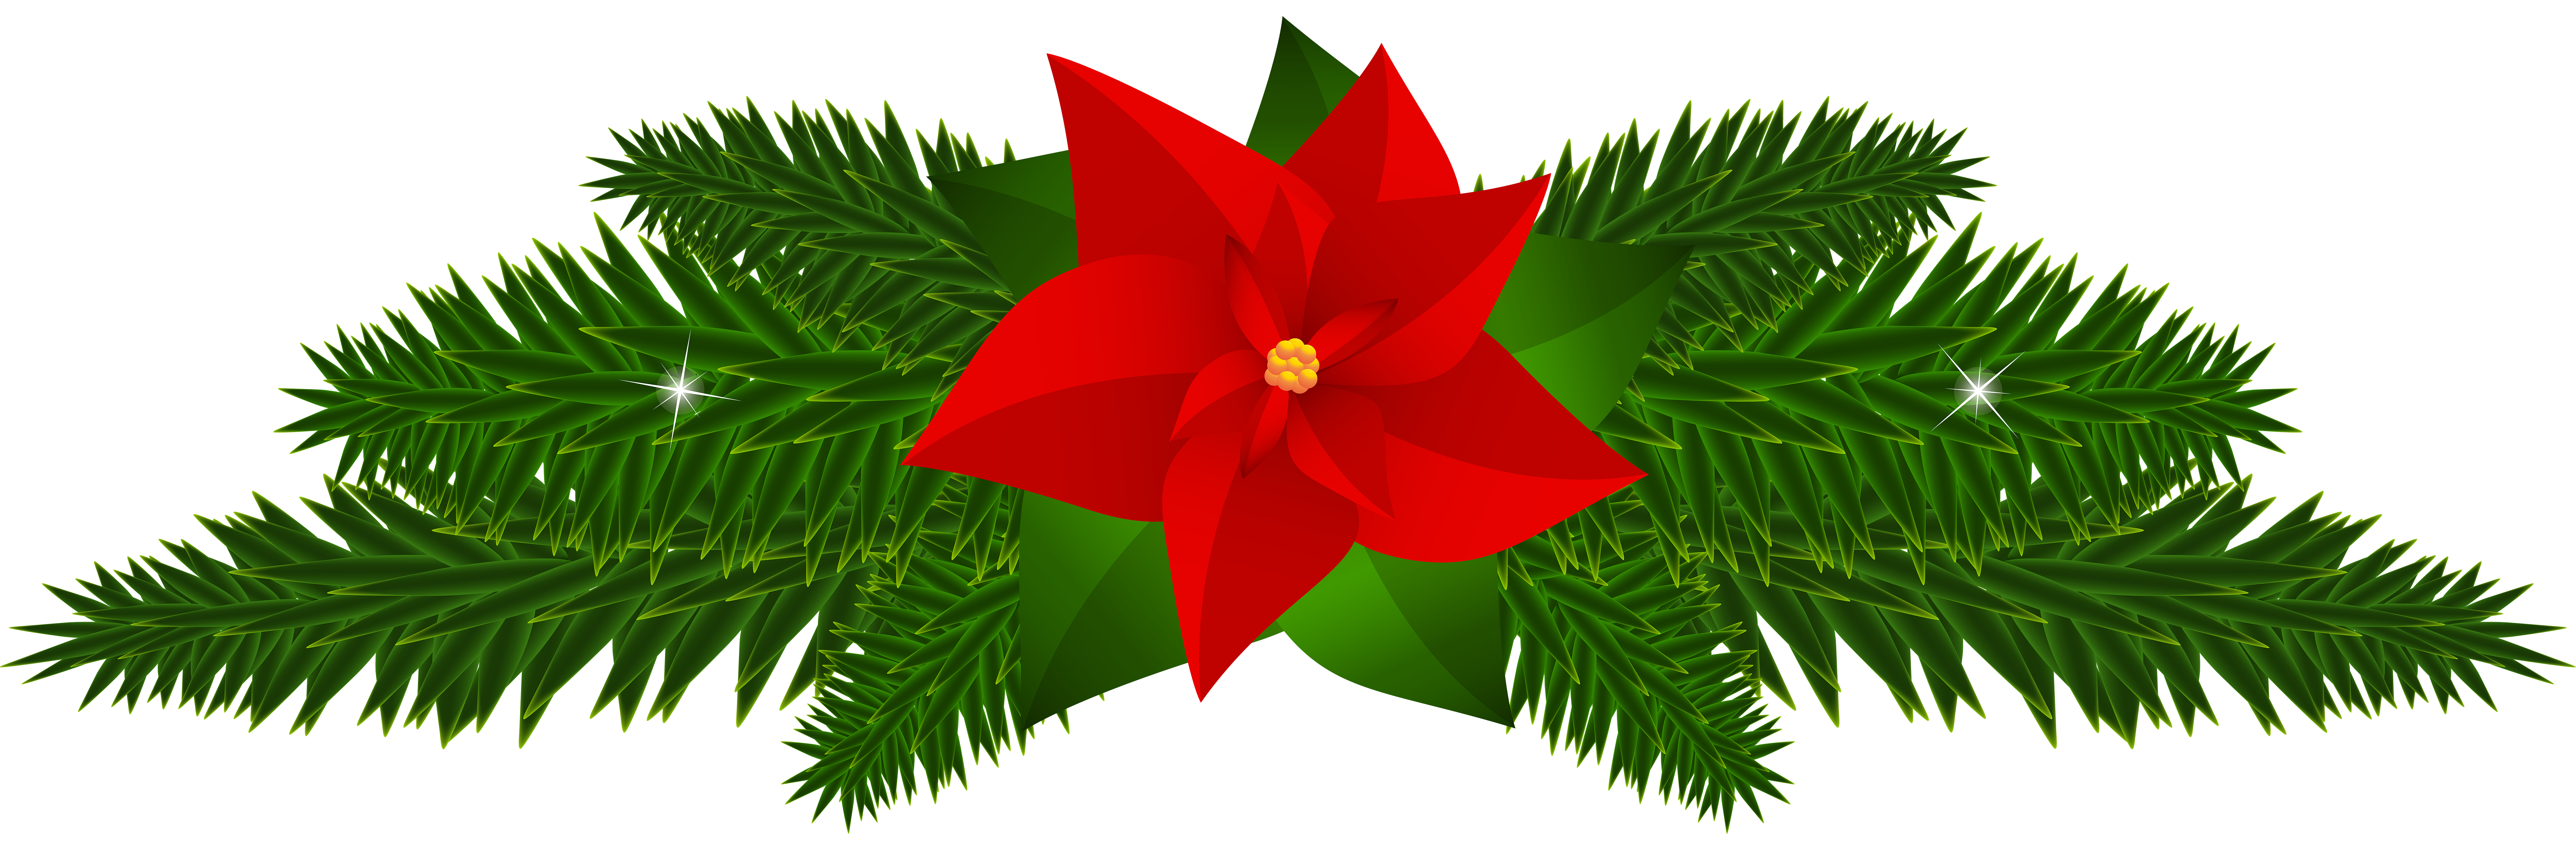 Poinsettia tree clipart clip art black and white library Christmas Poinsettia Decoration PNG Clip Art | Gallery Yopriceville ... clip art black and white library